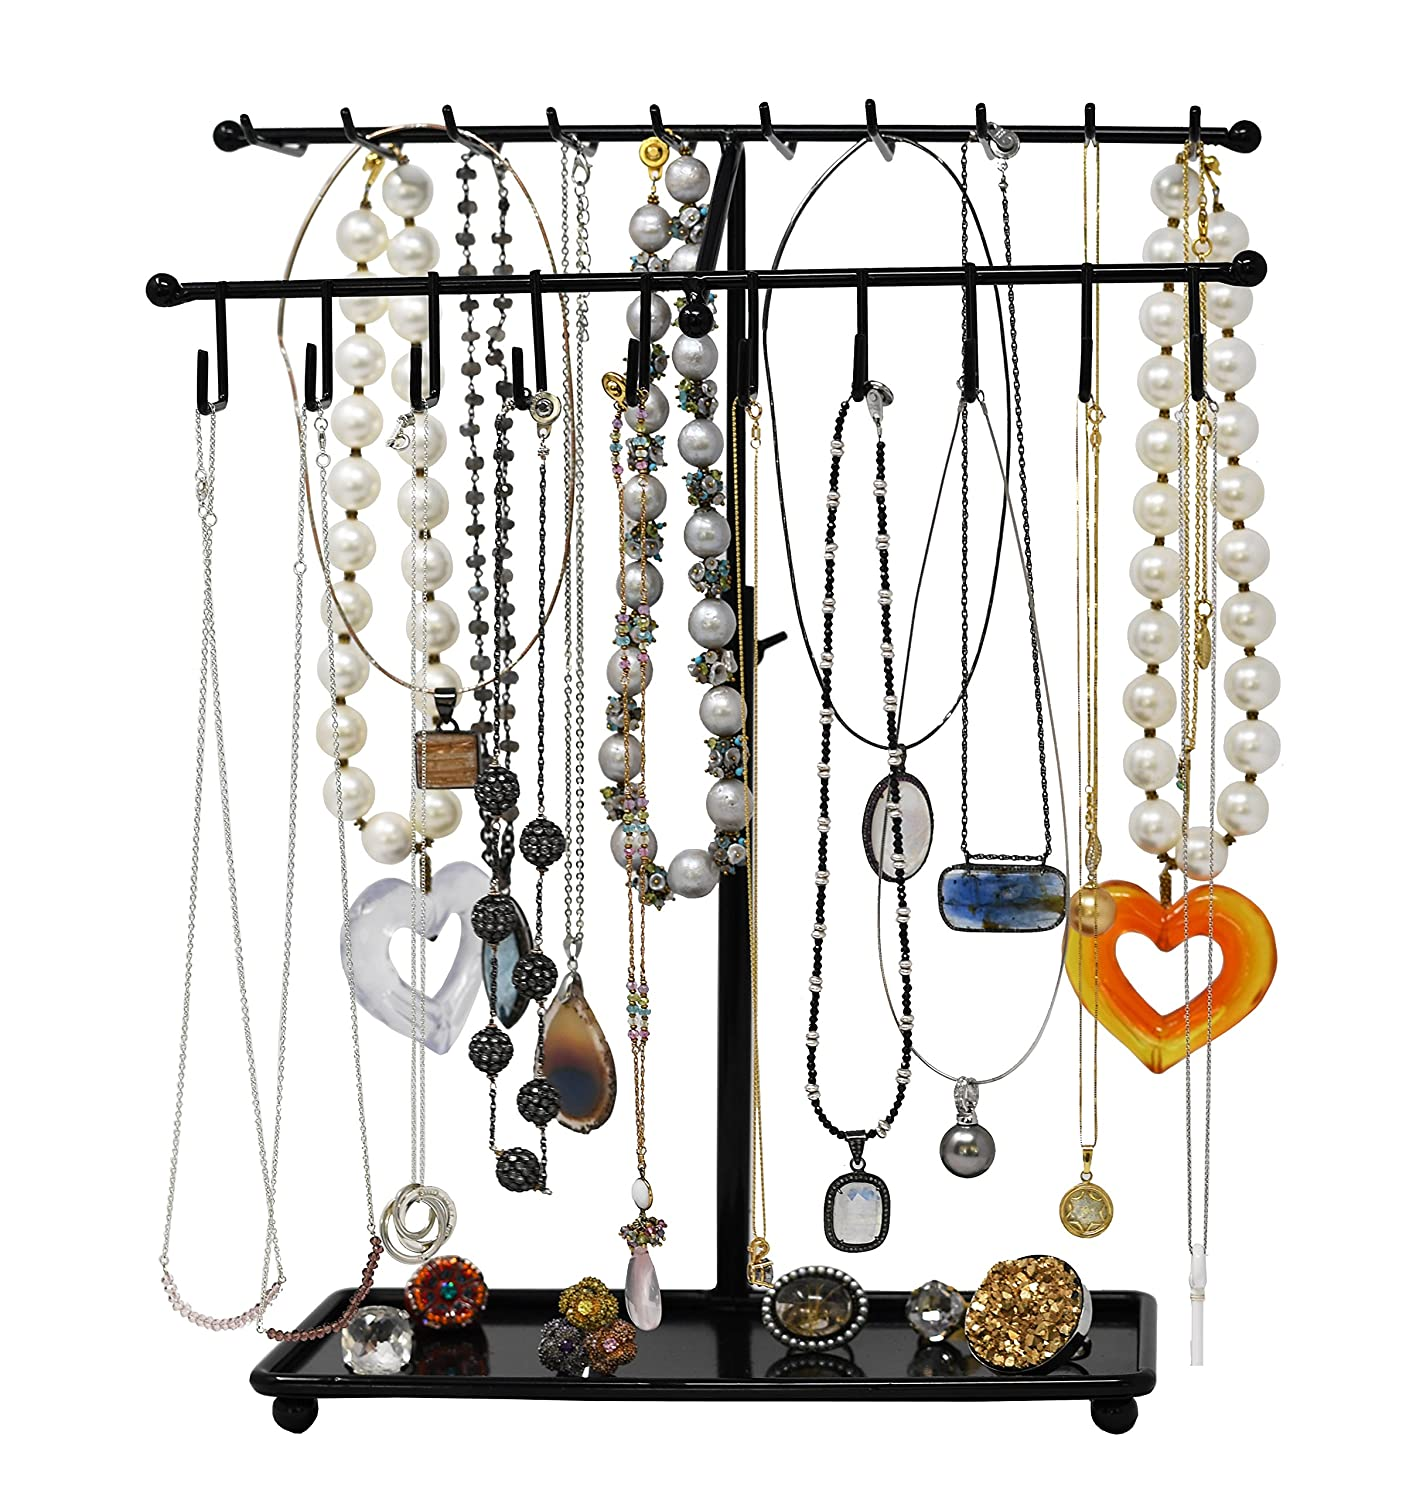 ARAD Adjustable Height Black Metal 30-Hook Necklace/Bracelet Jewelry Organizer Display Rack by FBA_LIL-KA-402